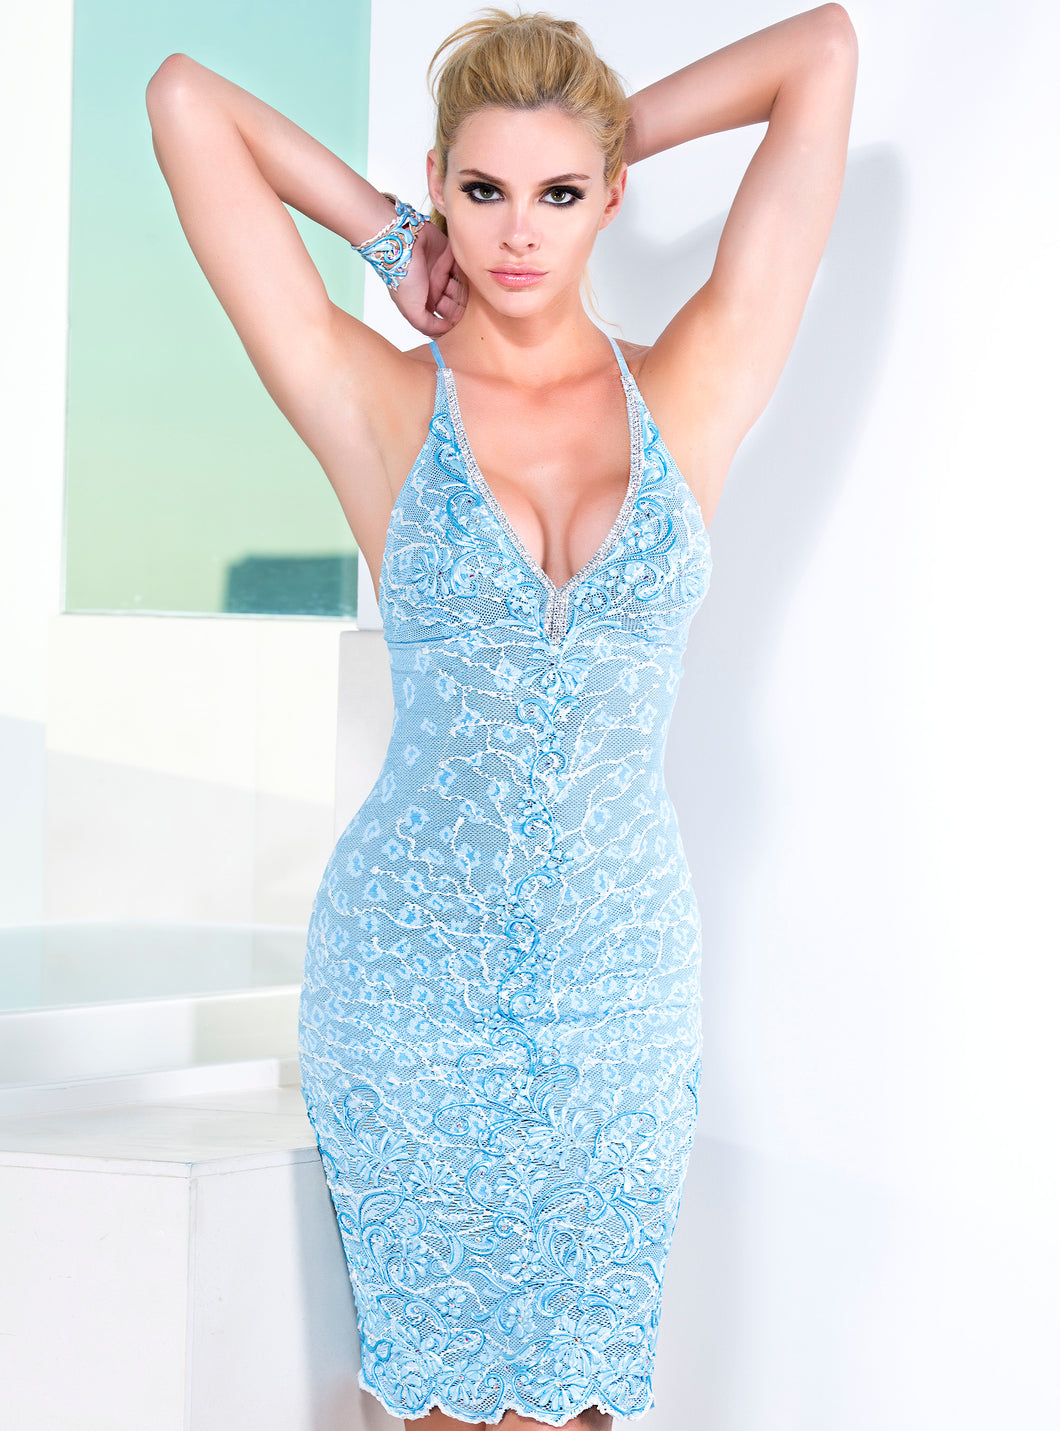 Sol Ligth Blue Short Dress - Cocktail Dress - BACCIO Couture